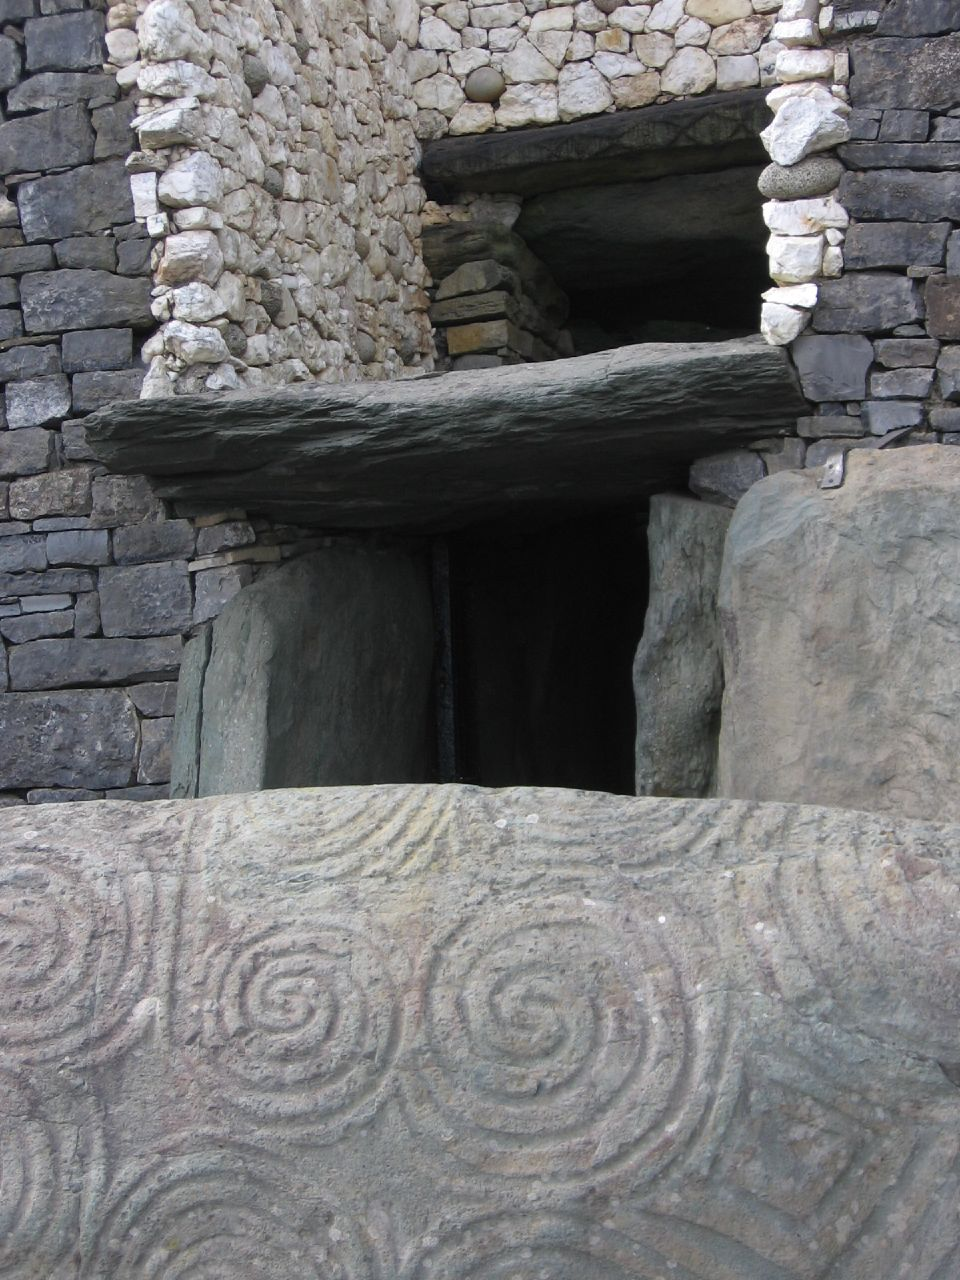 Symbols and their meaning the triskelion the symbol is engraved in several places especially on a large rock at the entrance it would have been used more than 2500 years before the celts were buycottarizona